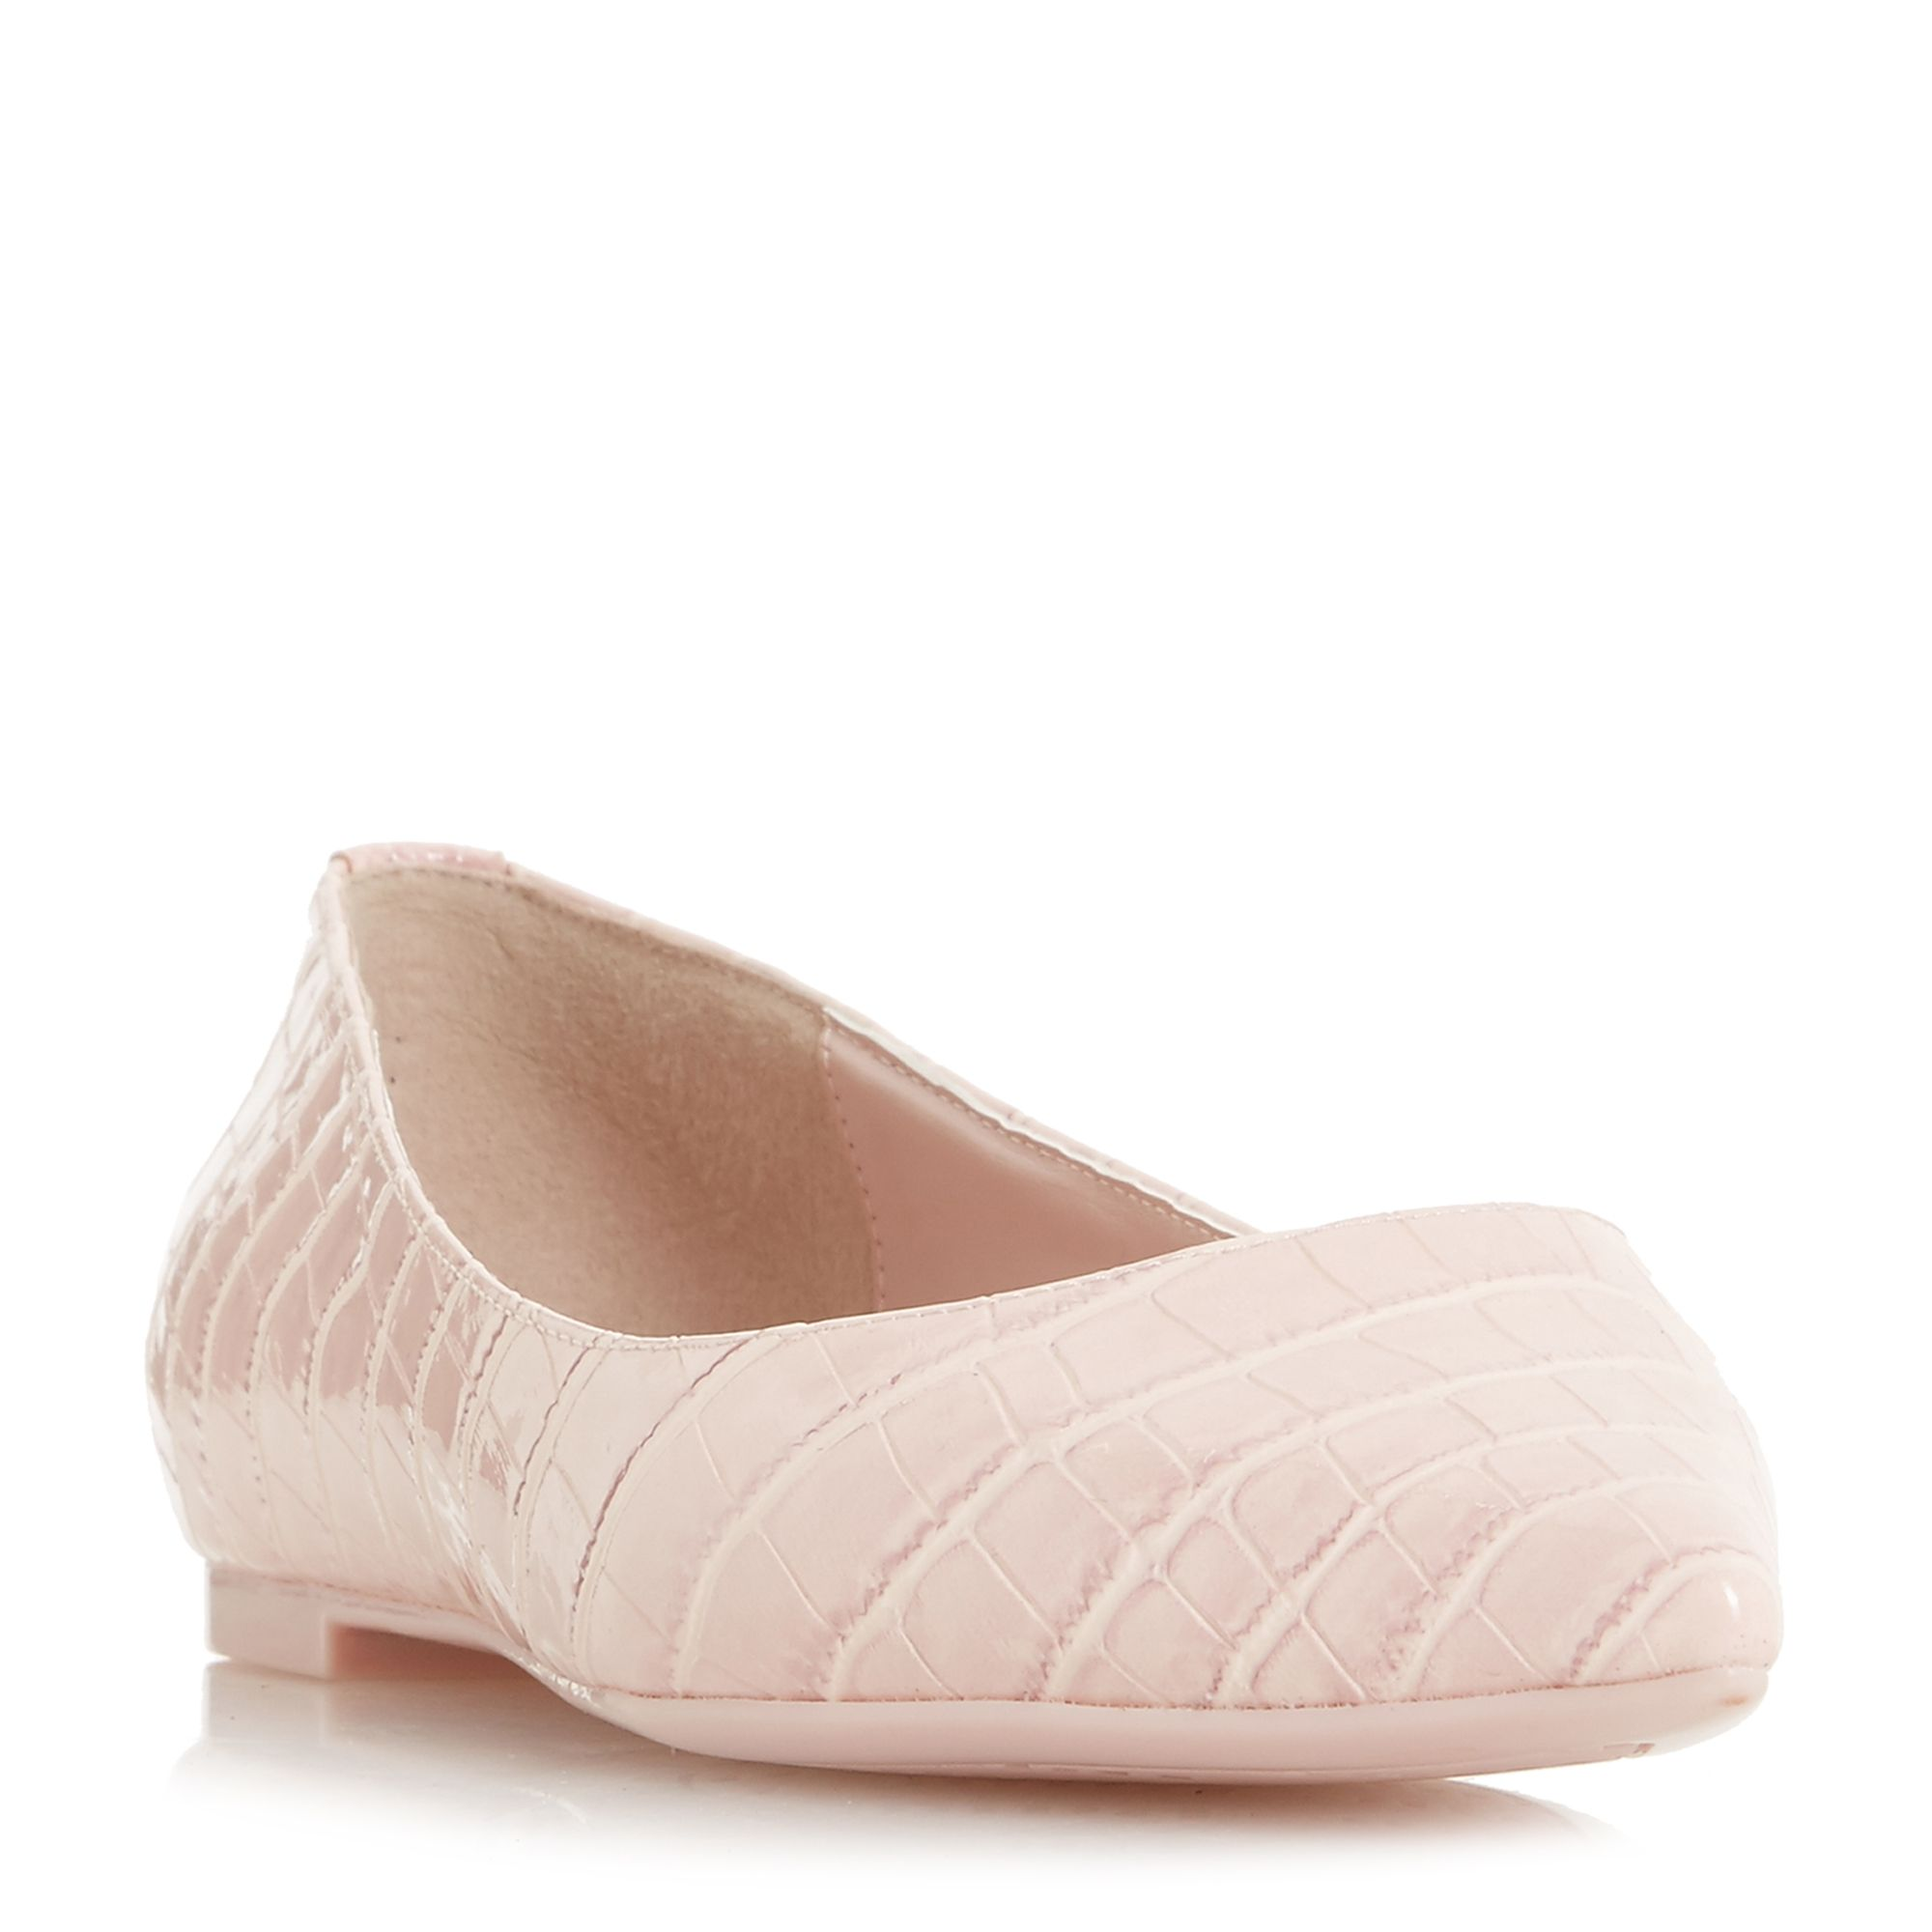 Dune Aeron Flex Pointed Toe Slip On Shoes, Pink